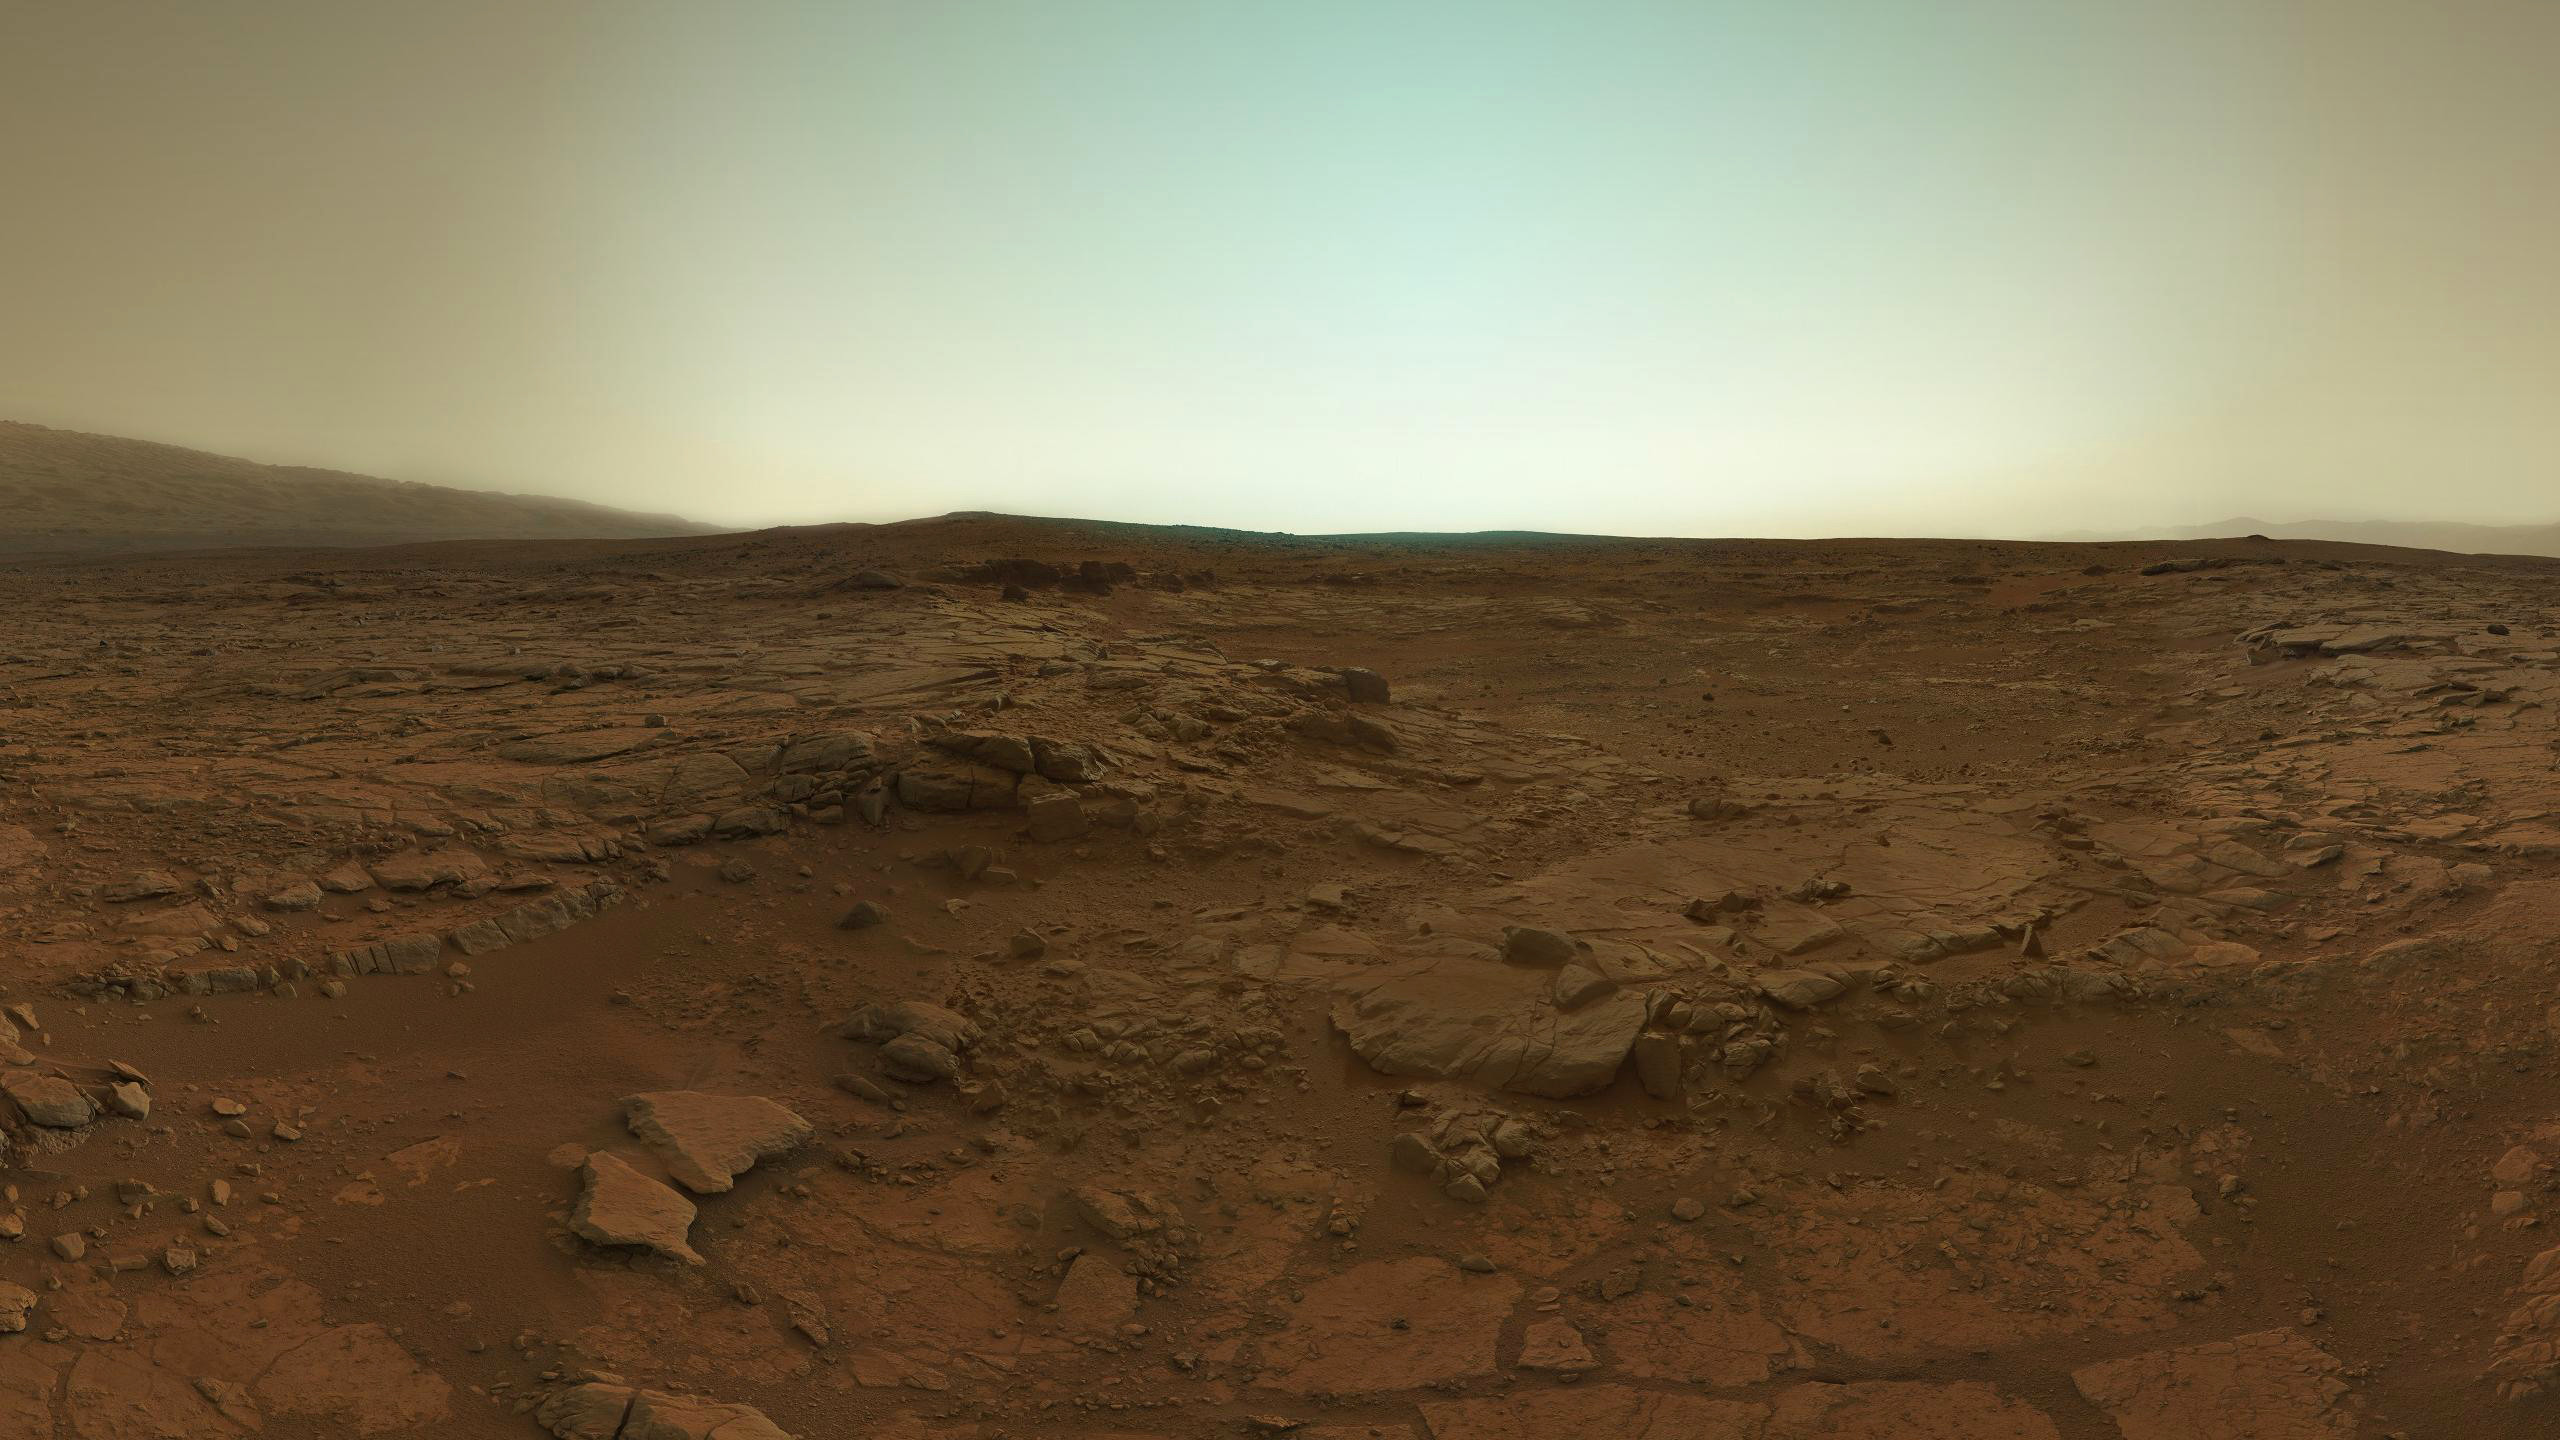 Res: 2560x1440, Space Images | Curiosity Approaching Mars, Artist's Concept